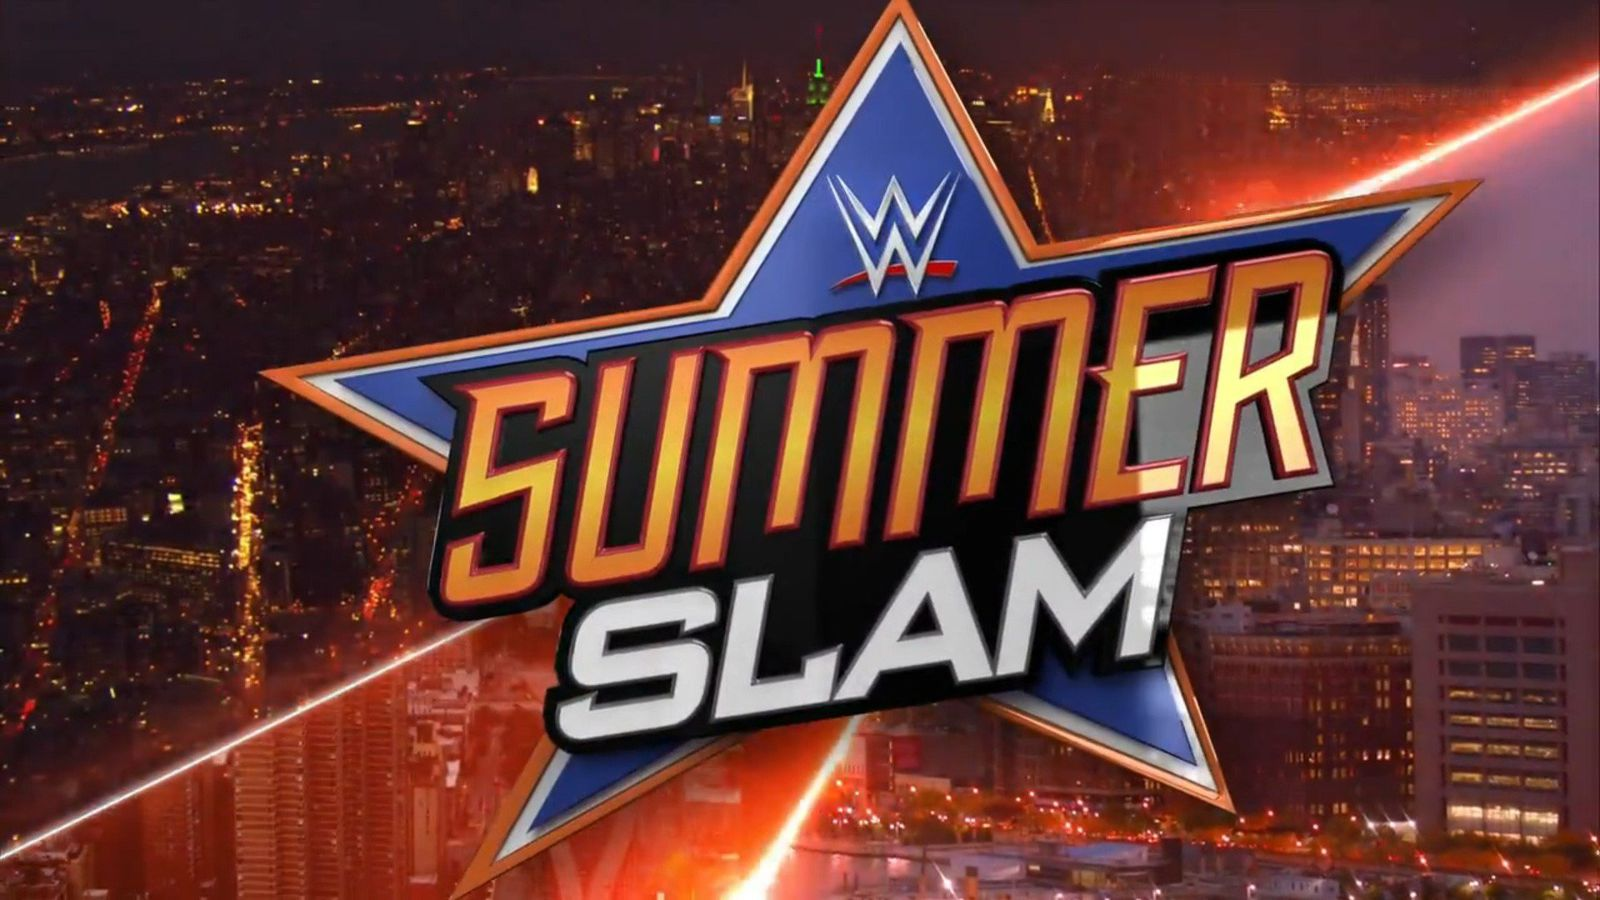 Ring Ceremony Hd Wallpaper Cageside Countdown Best Of Summerslam 2016 Cageside Seats